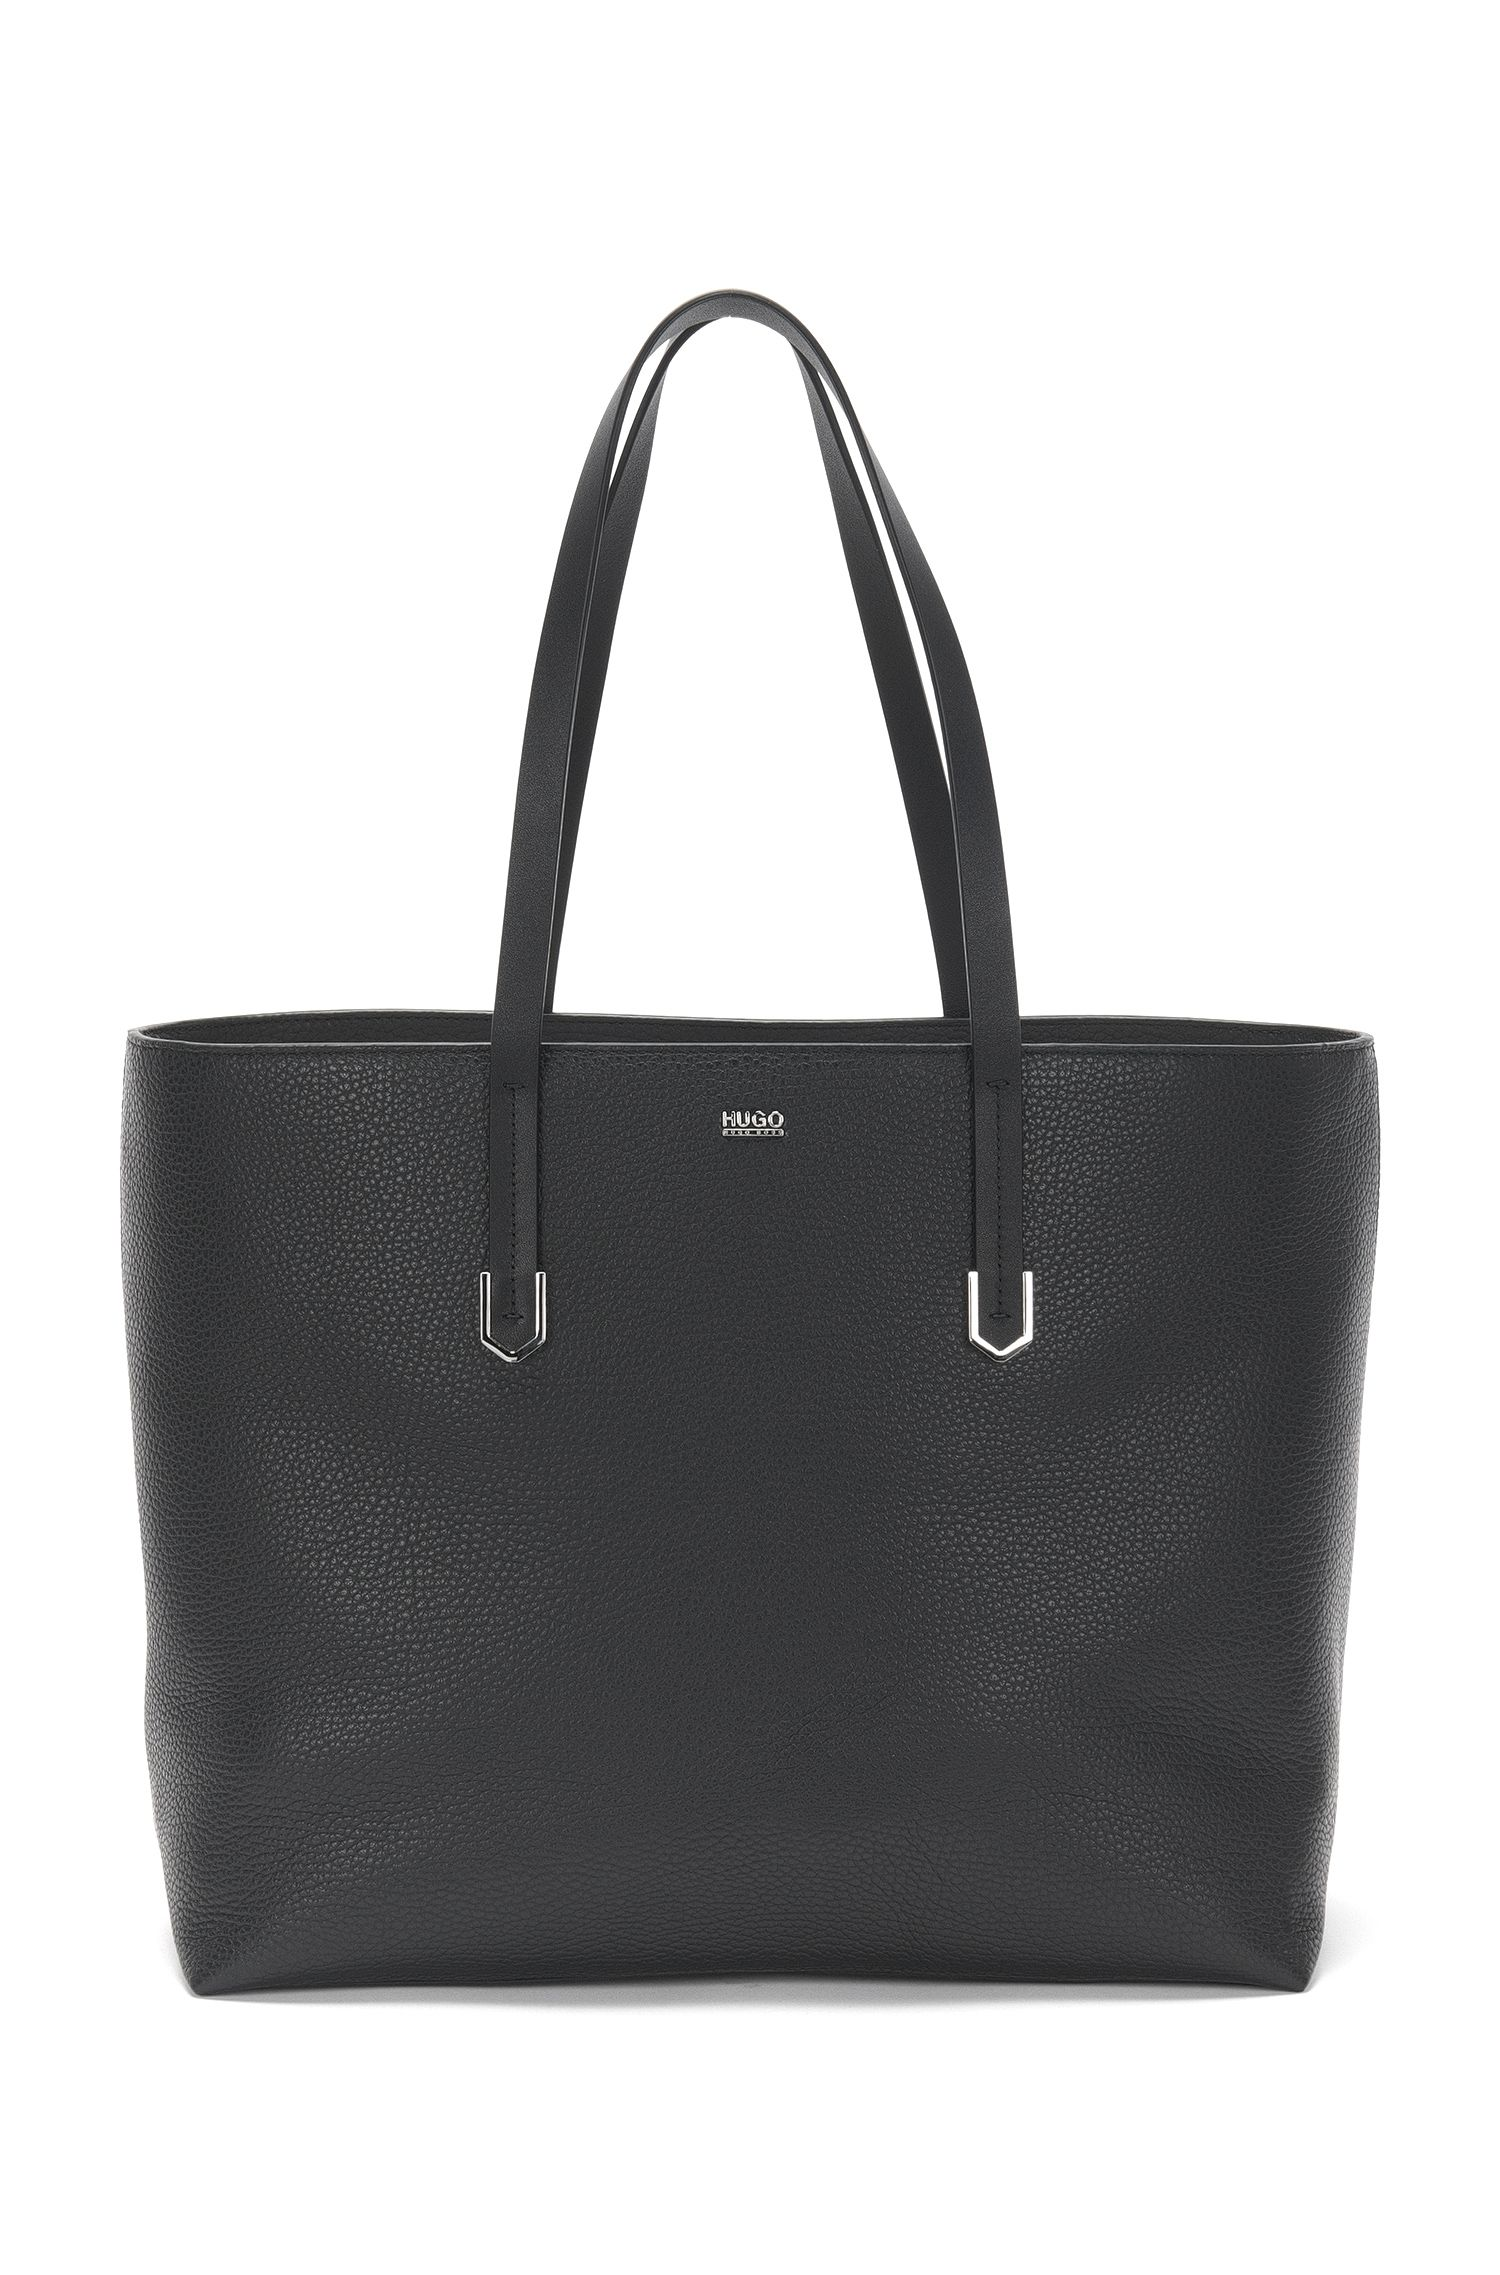 Leather shopper bag with polished hardware